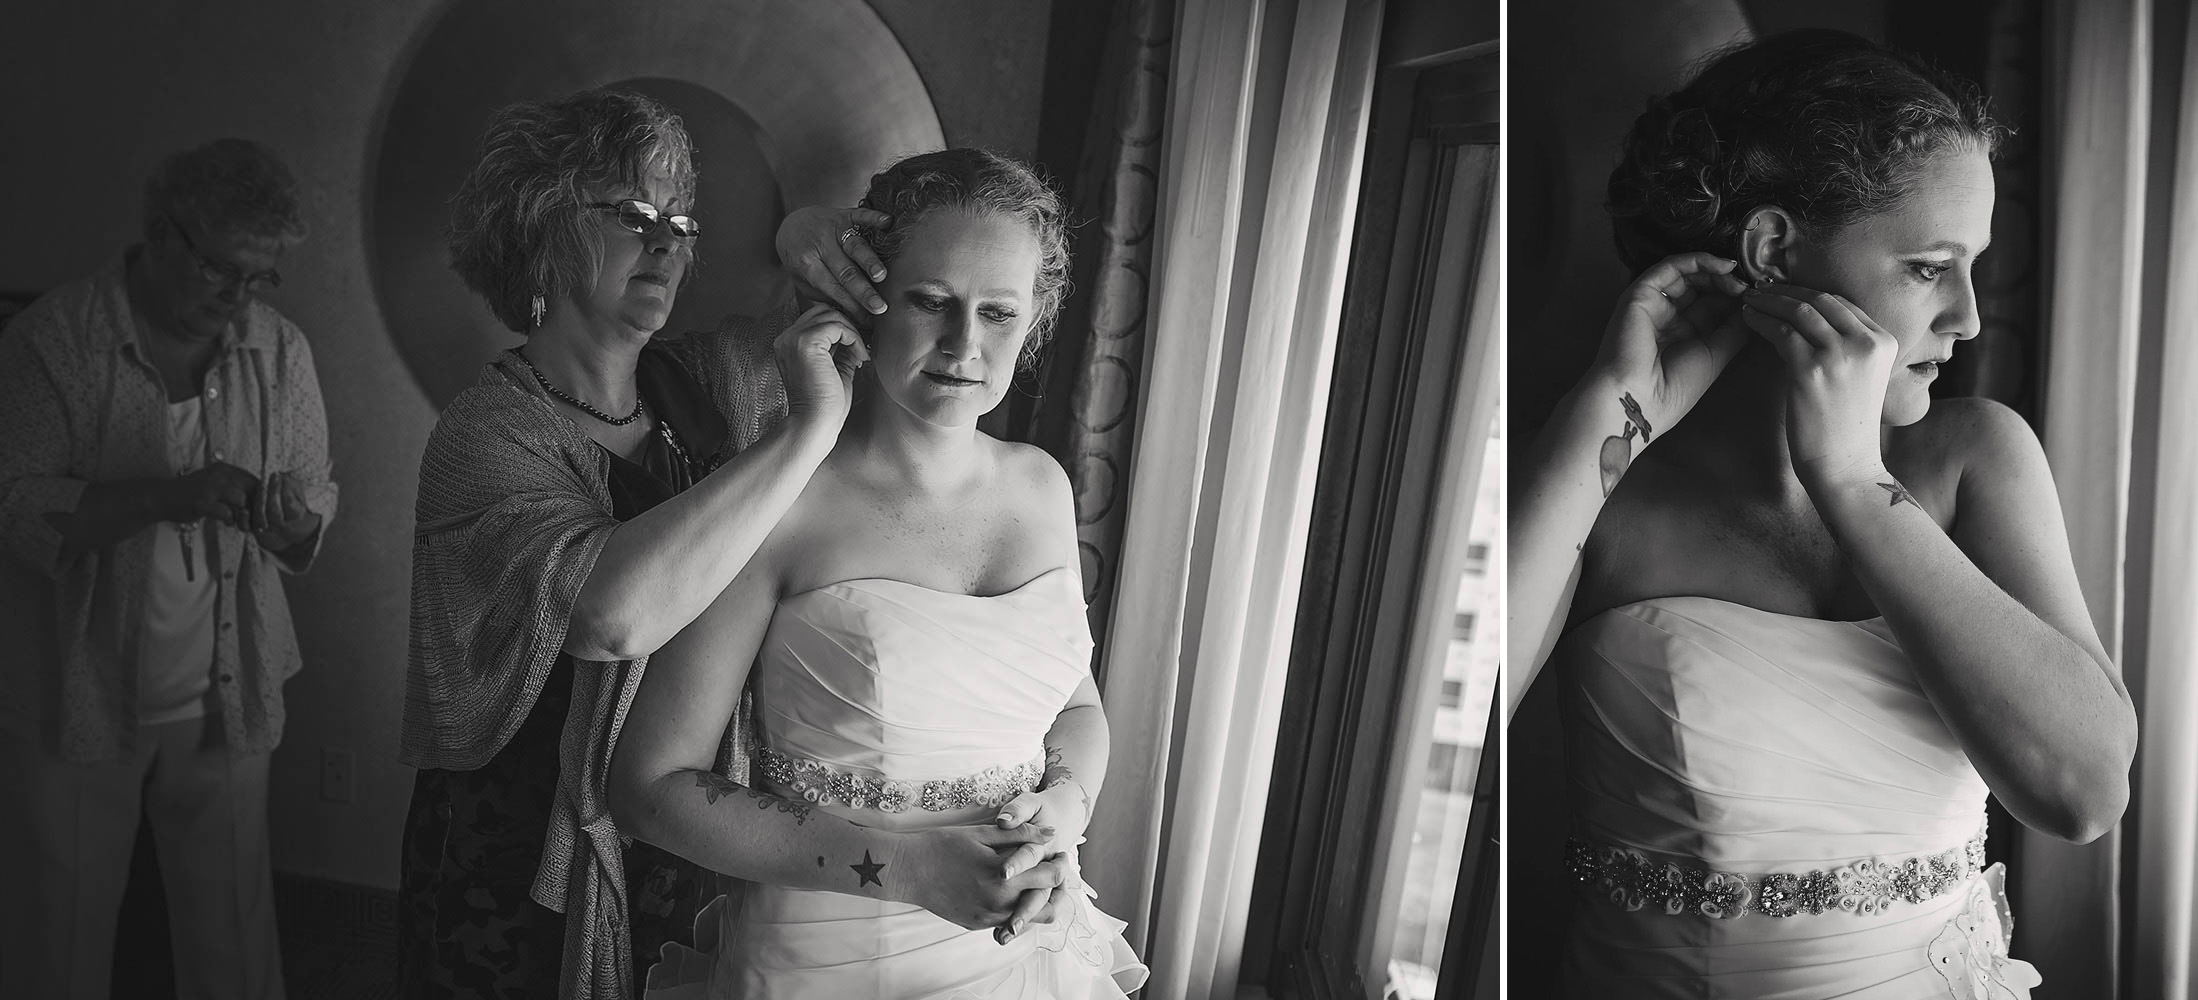 Nicole chose her to wear her late grandmother's earrings on her wedding day. Here, her aunt helps her put them in.